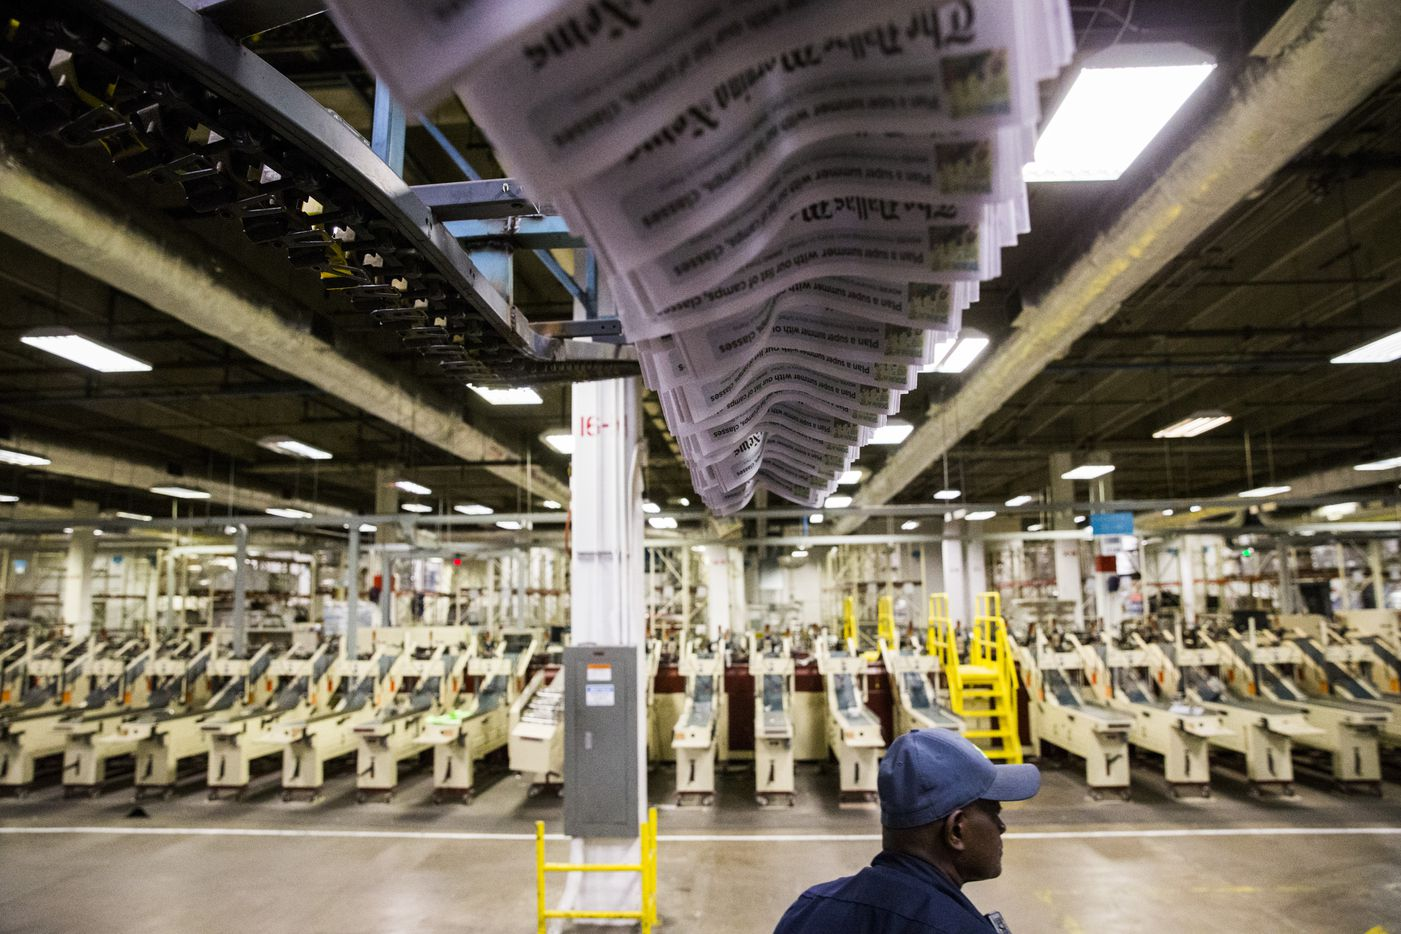 Copies of the Friday, April 7, 2017 issue move overhead. (Ashley Landis/The Dallas Morning News)